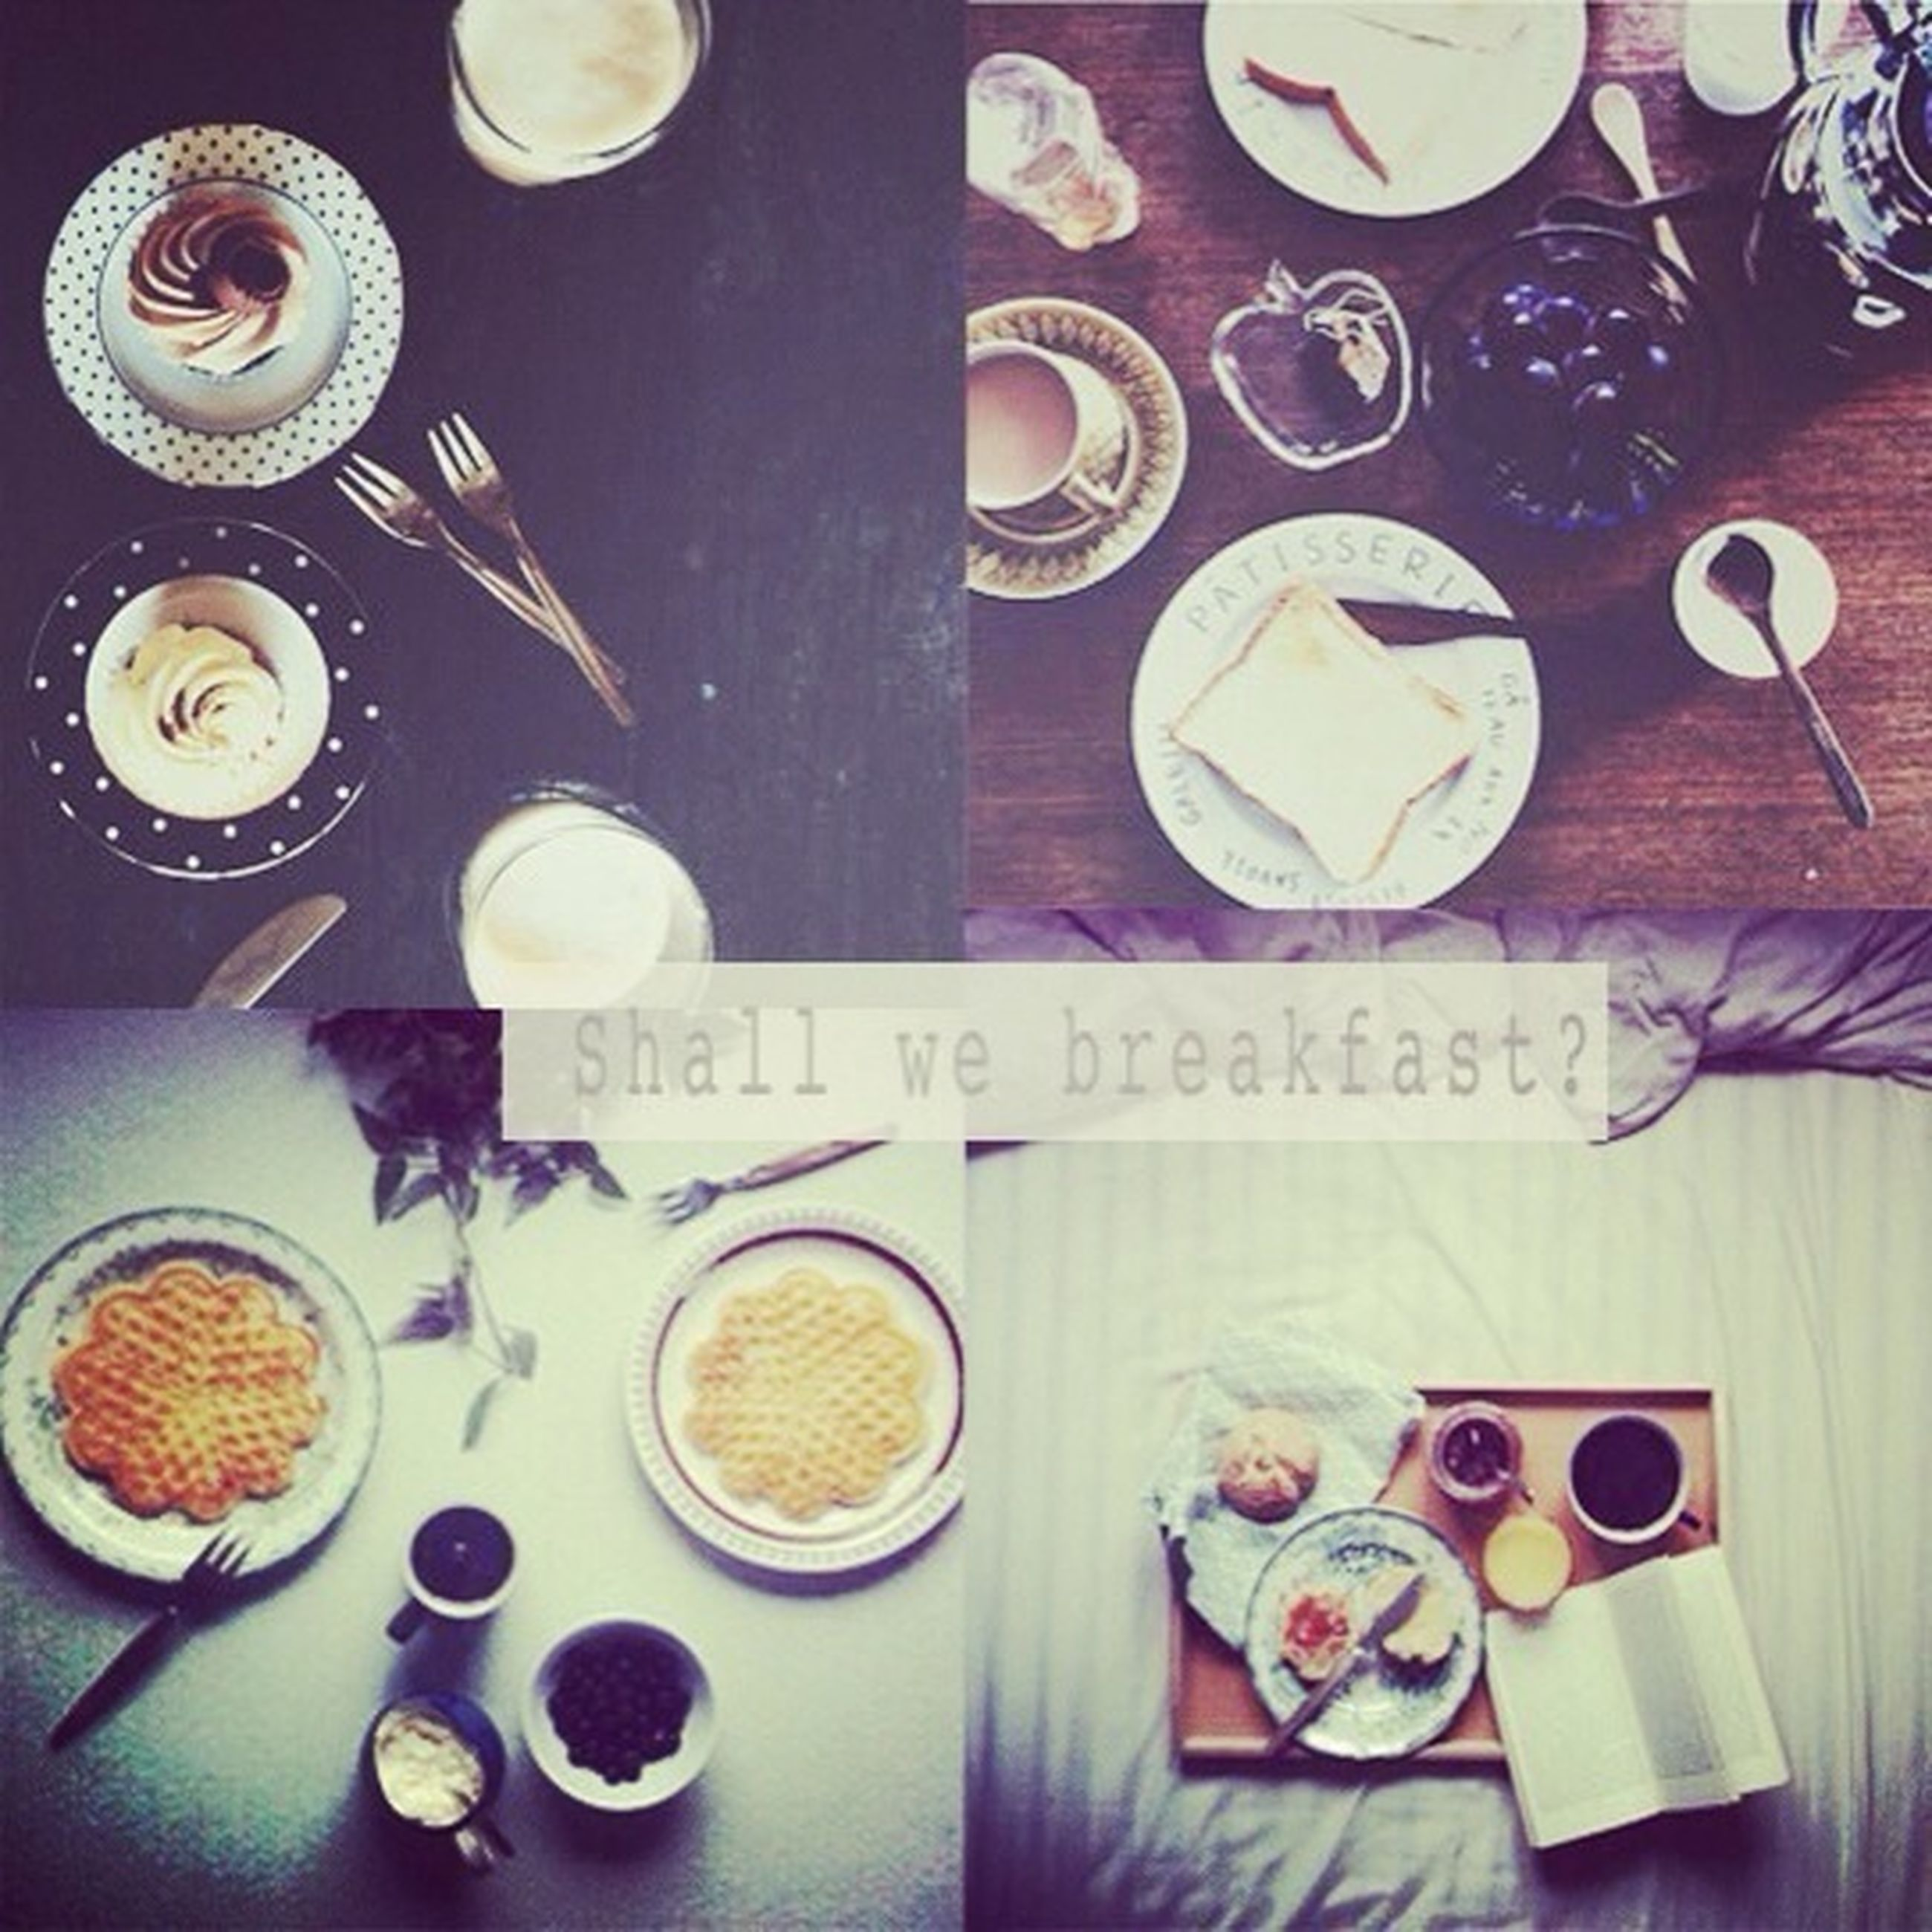 indoors, food and drink, table, still life, coffee cup, freshness, drink, coffee - drink, text, high angle view, food, refreshment, plate, communication, western script, cup, coffee, bowl, spoon, directly above